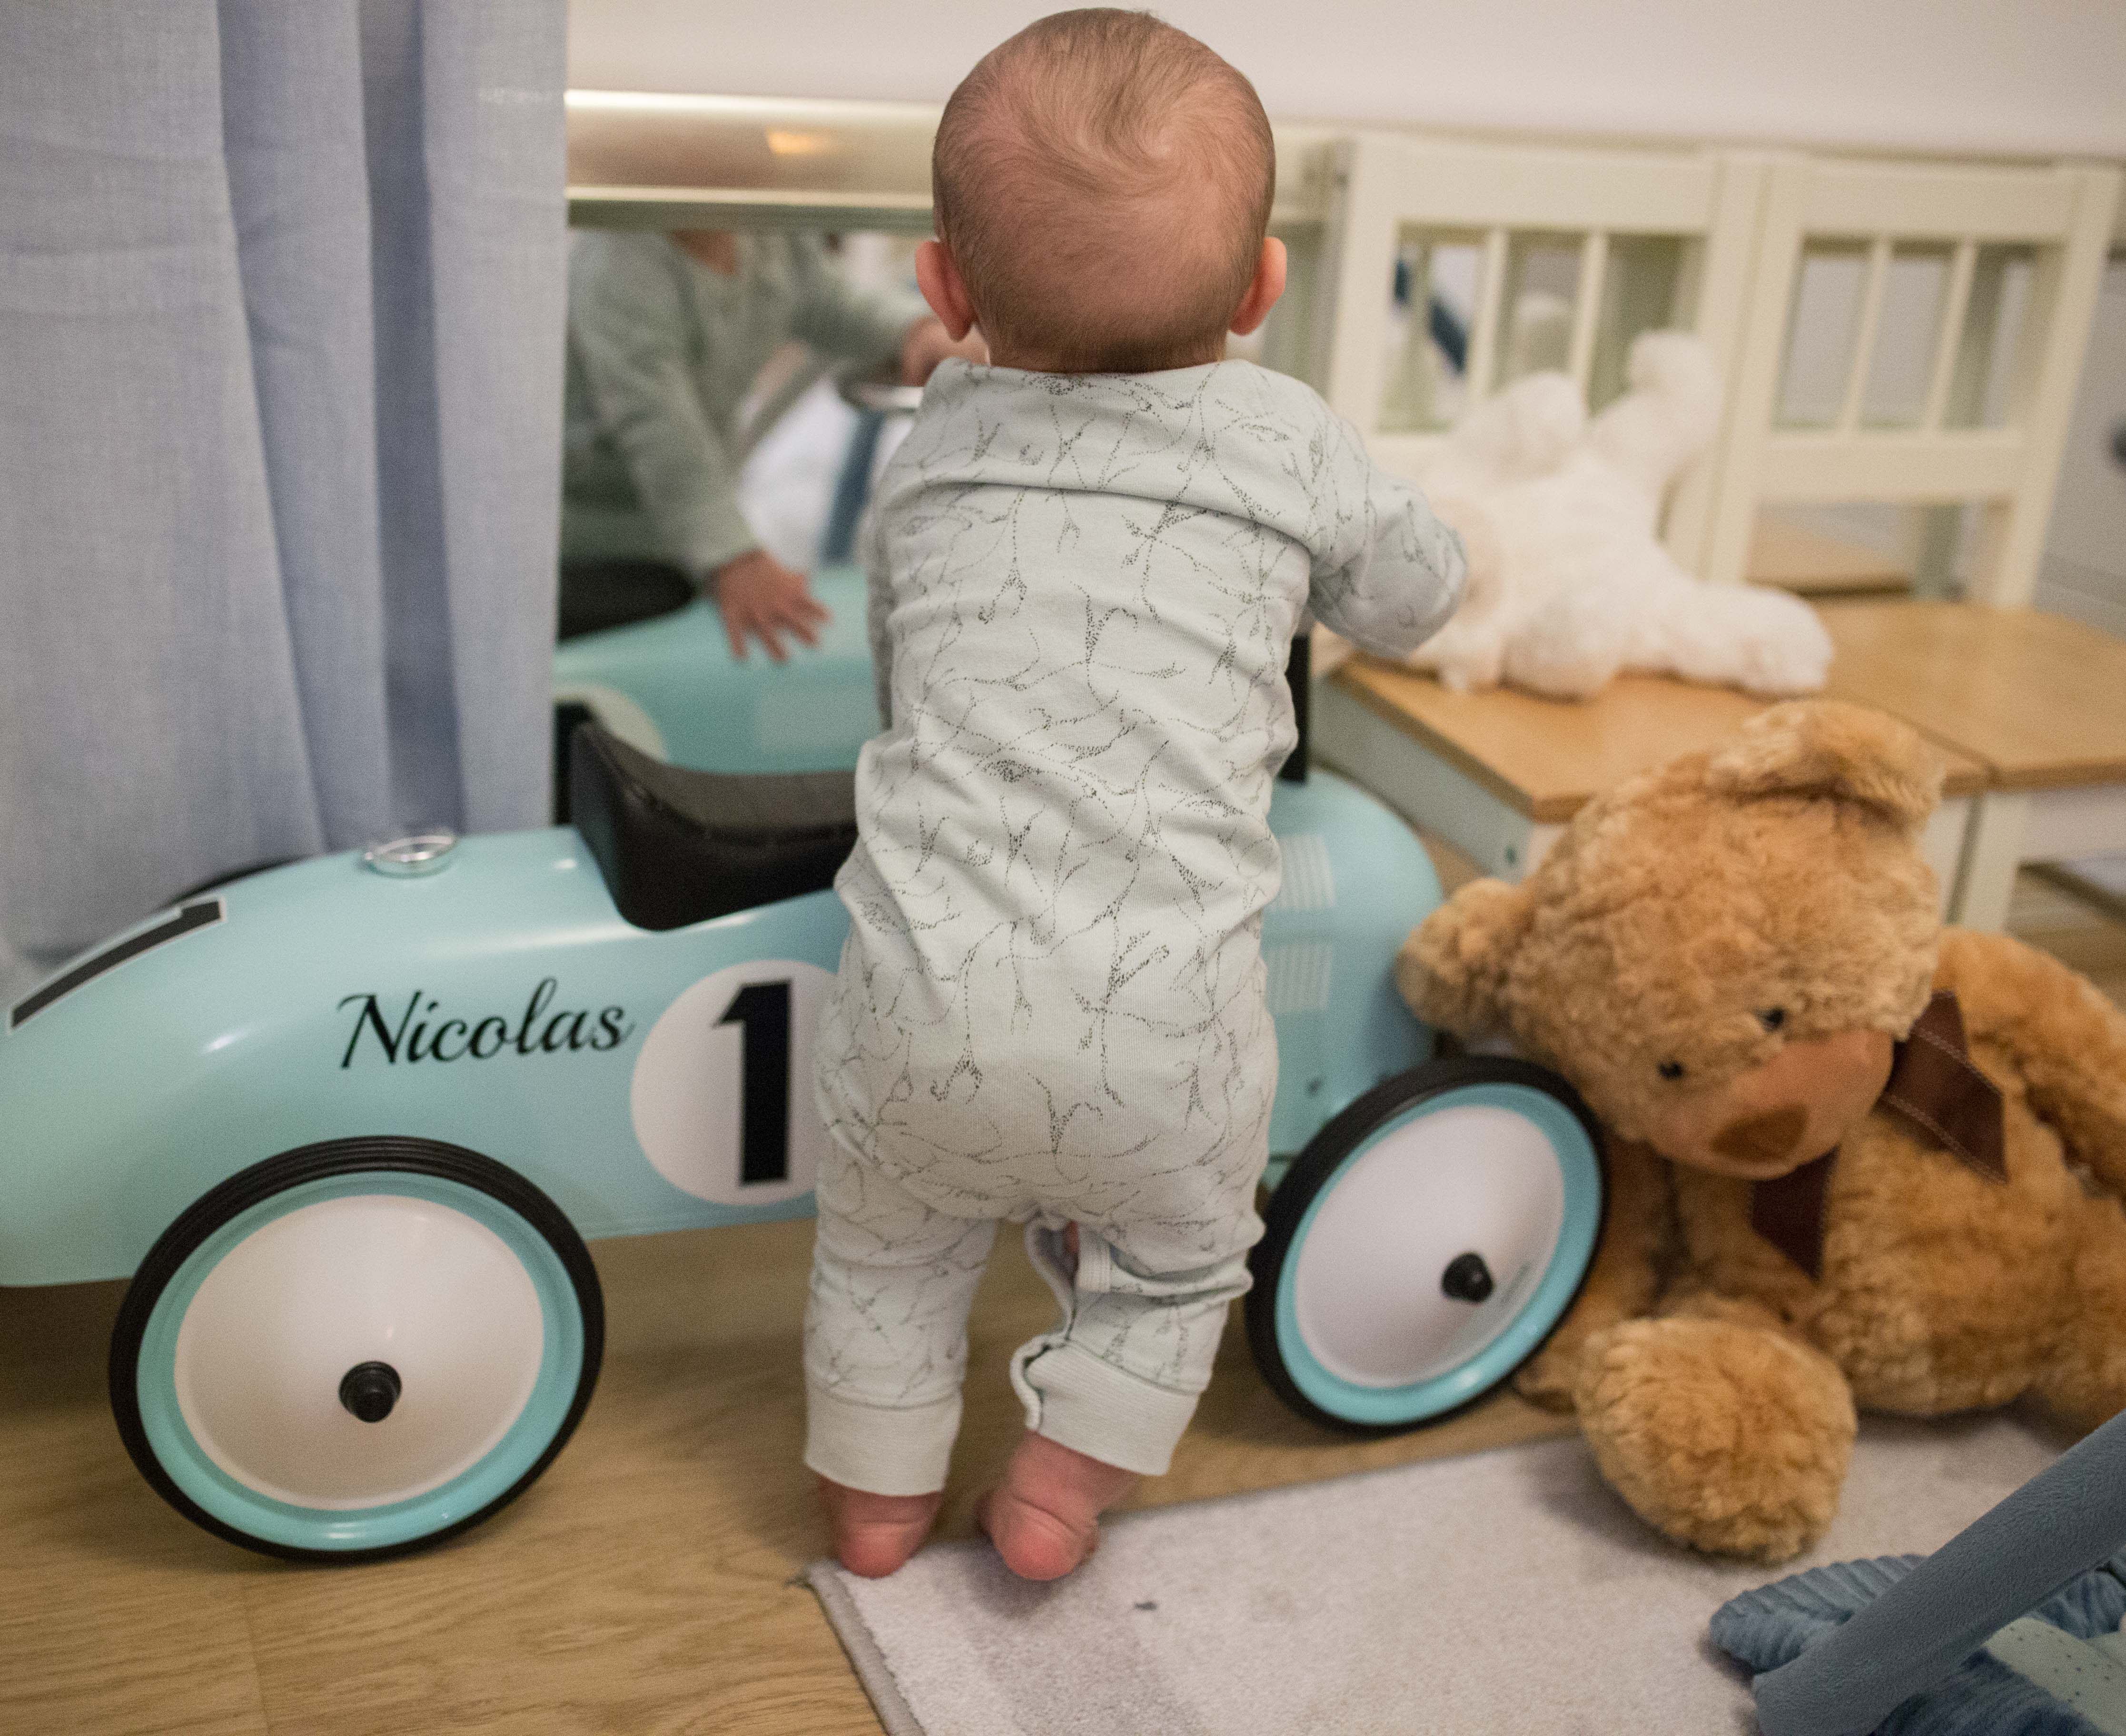 Inspiration for baby boys – My first car!